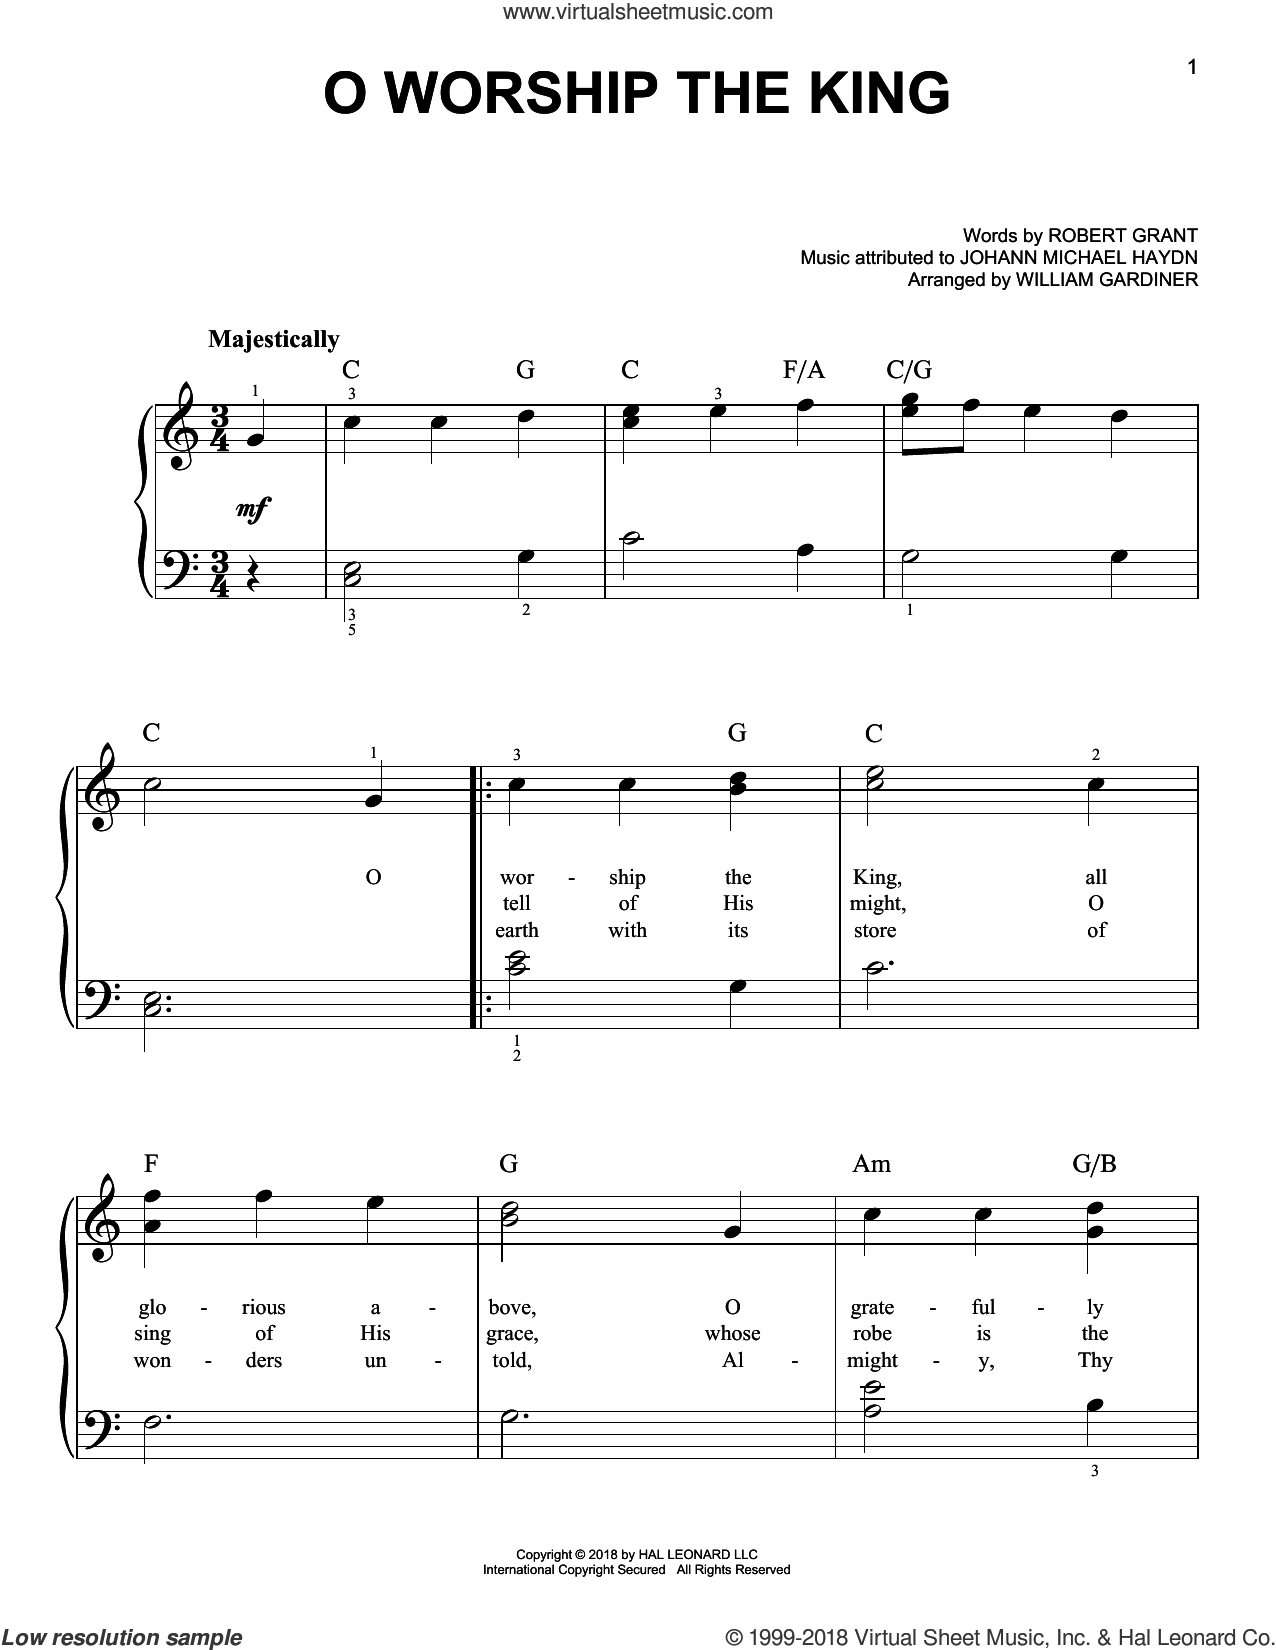 O Worship The King sheet music for piano solo by Johann Michael Haydn, Robert Grant and William Gardiner, easy skill level